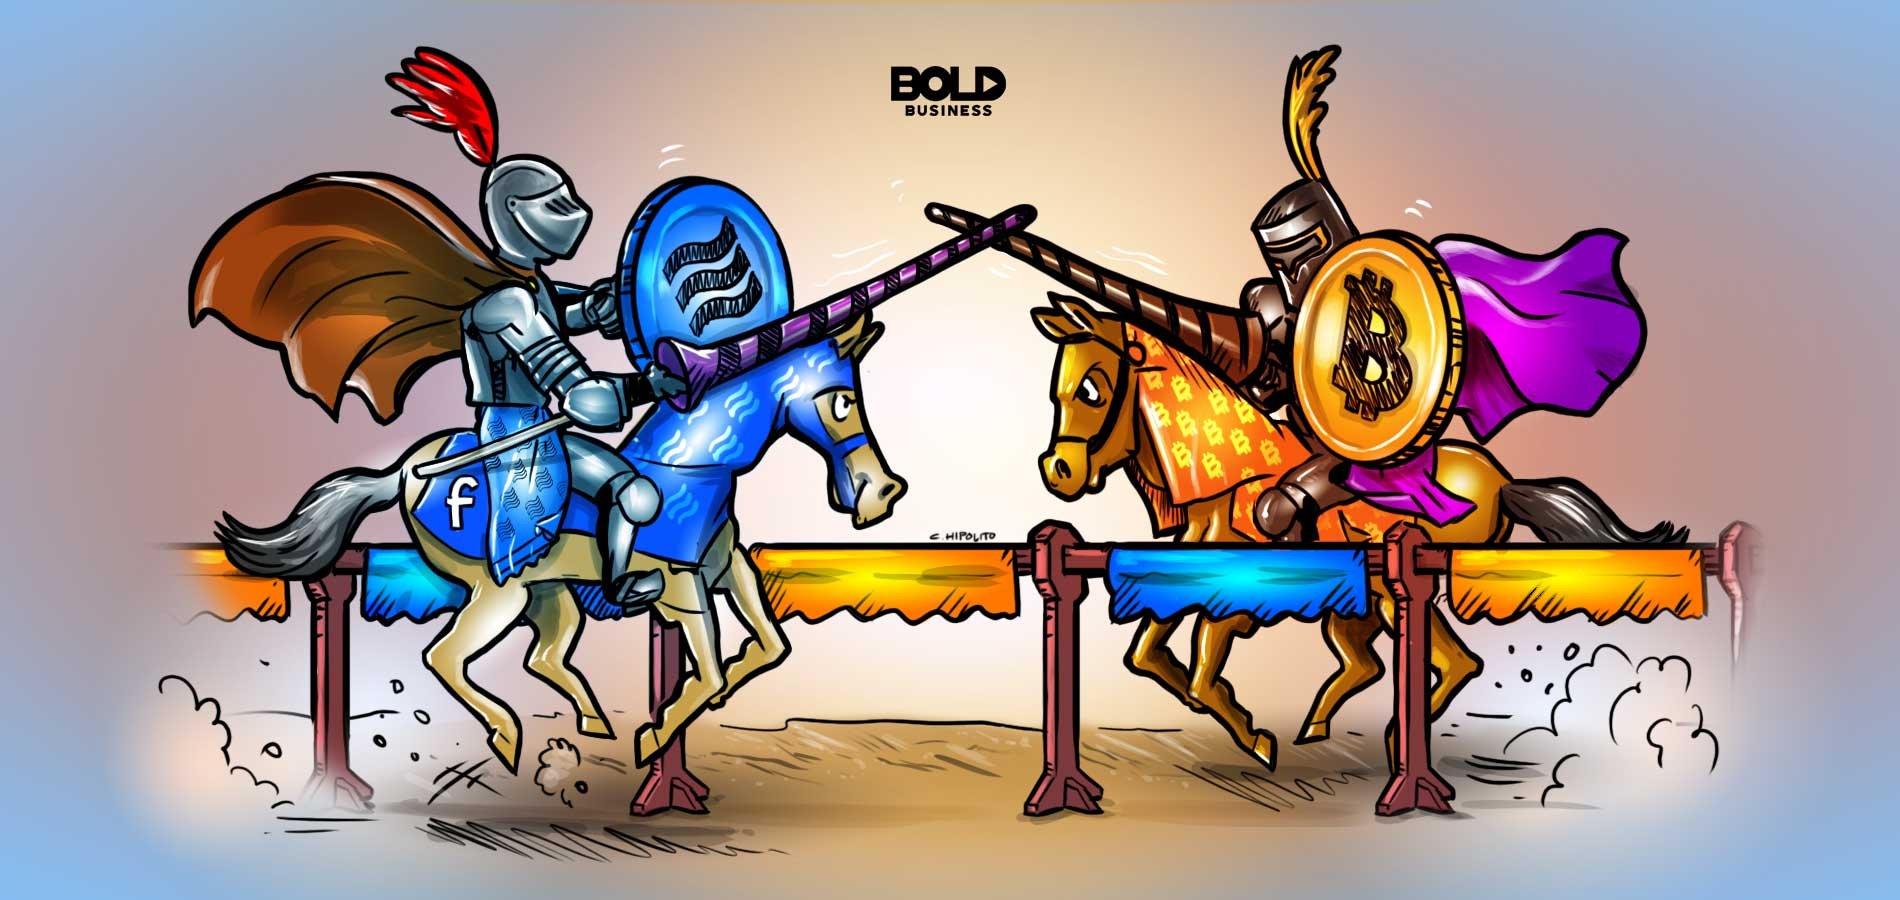 facebook libra coin versus bitcoin in knights joust duel cartoon